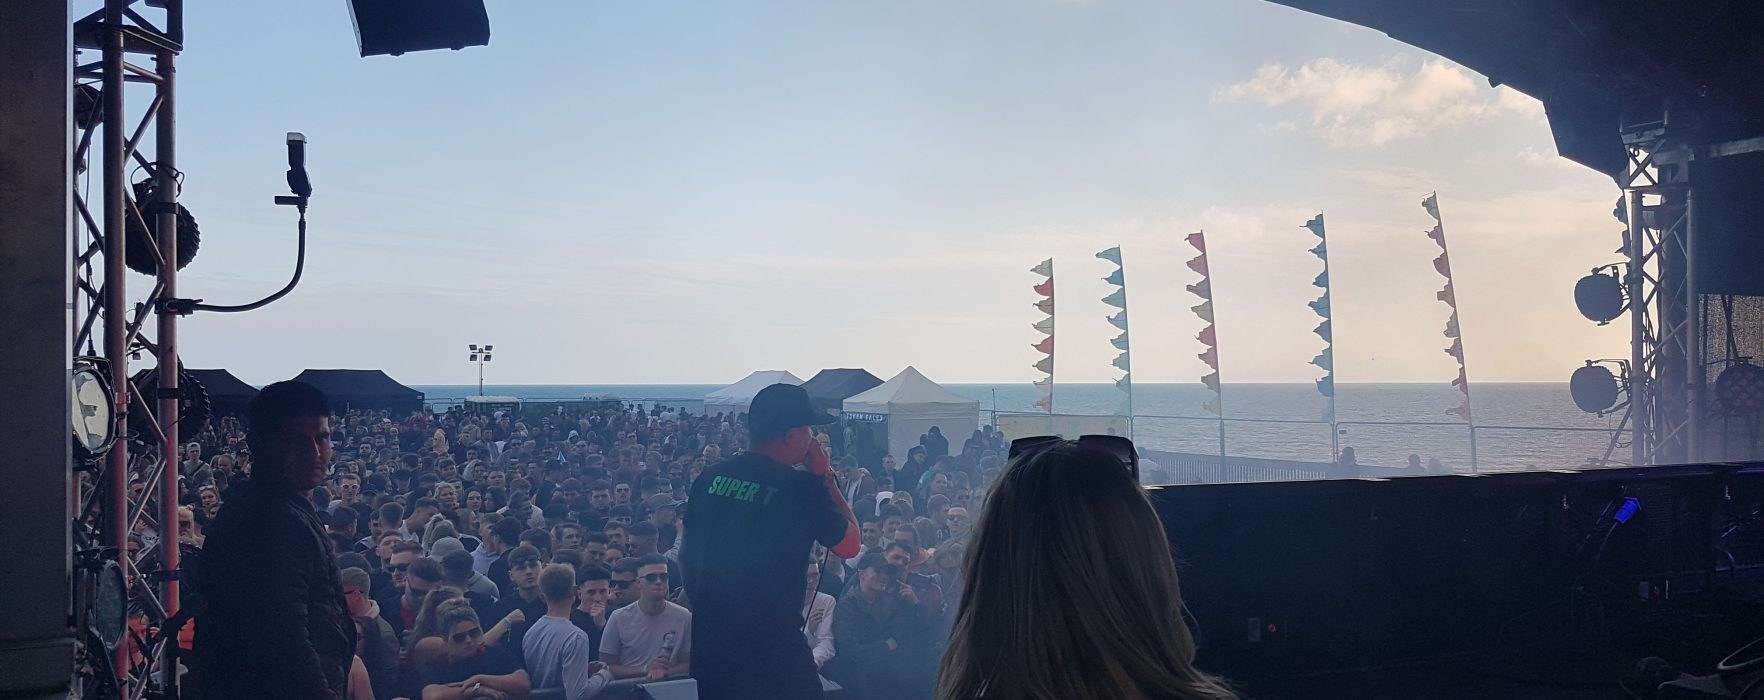 Pier Jam Hastings sets festival season off to a flying start